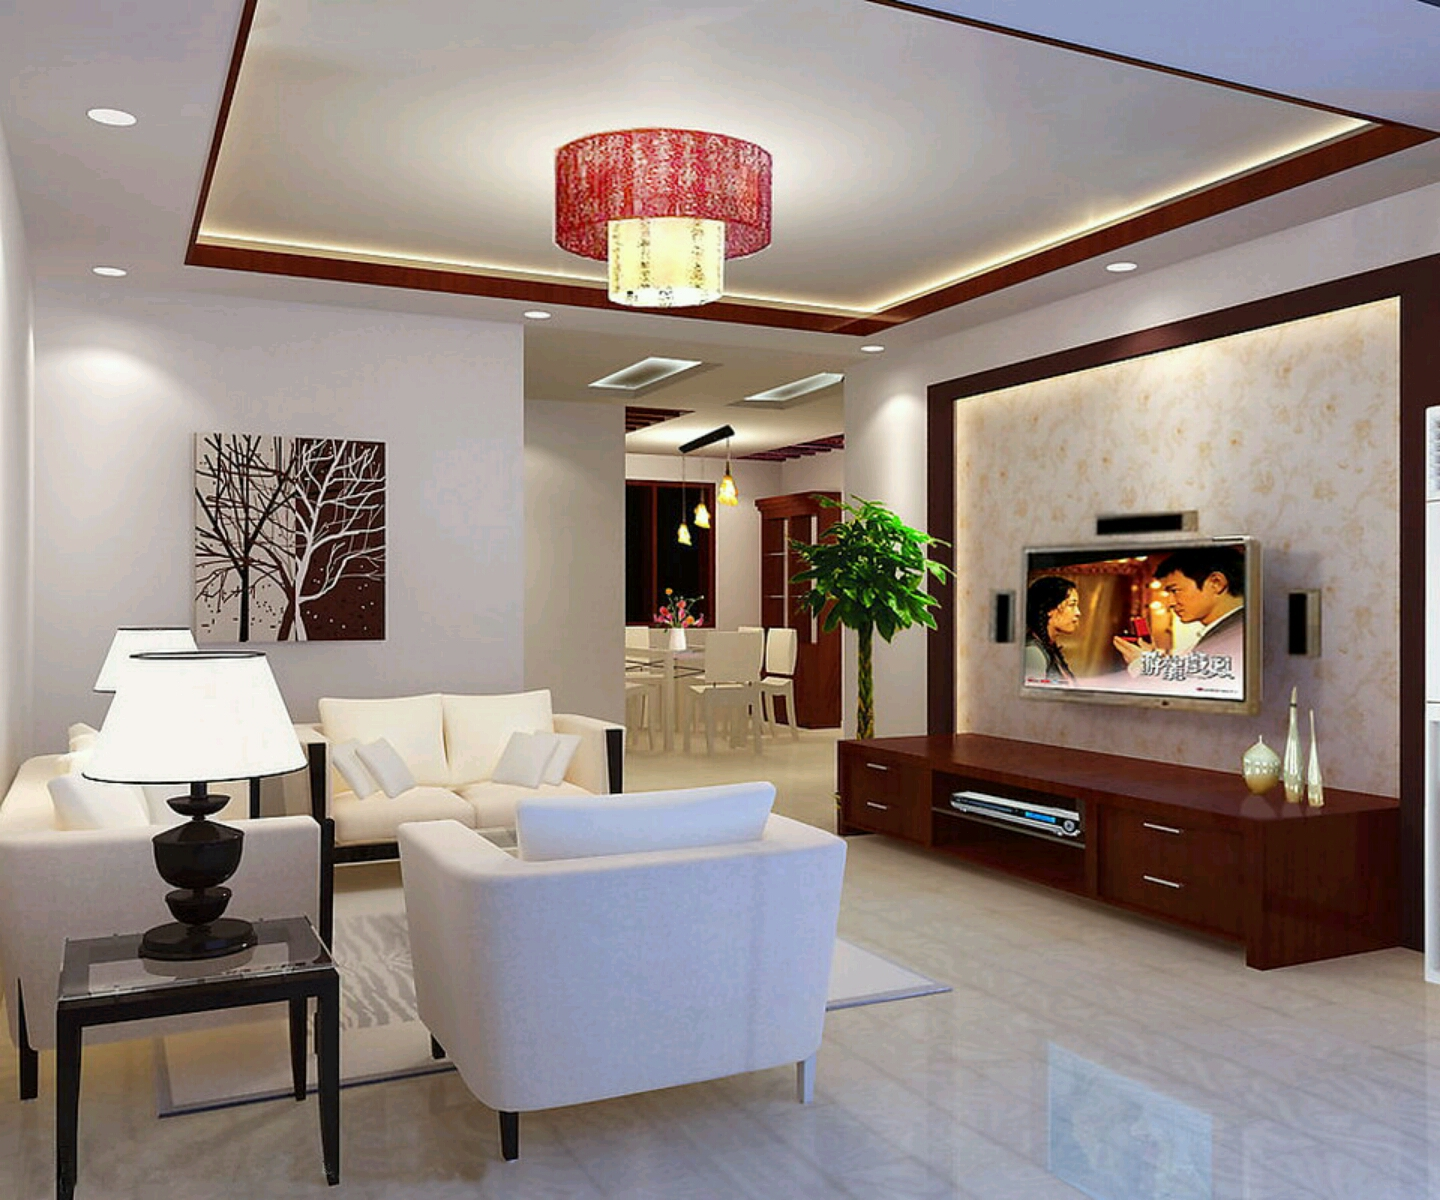 New home designs latest modern interior decoration for Latest lounge room designs